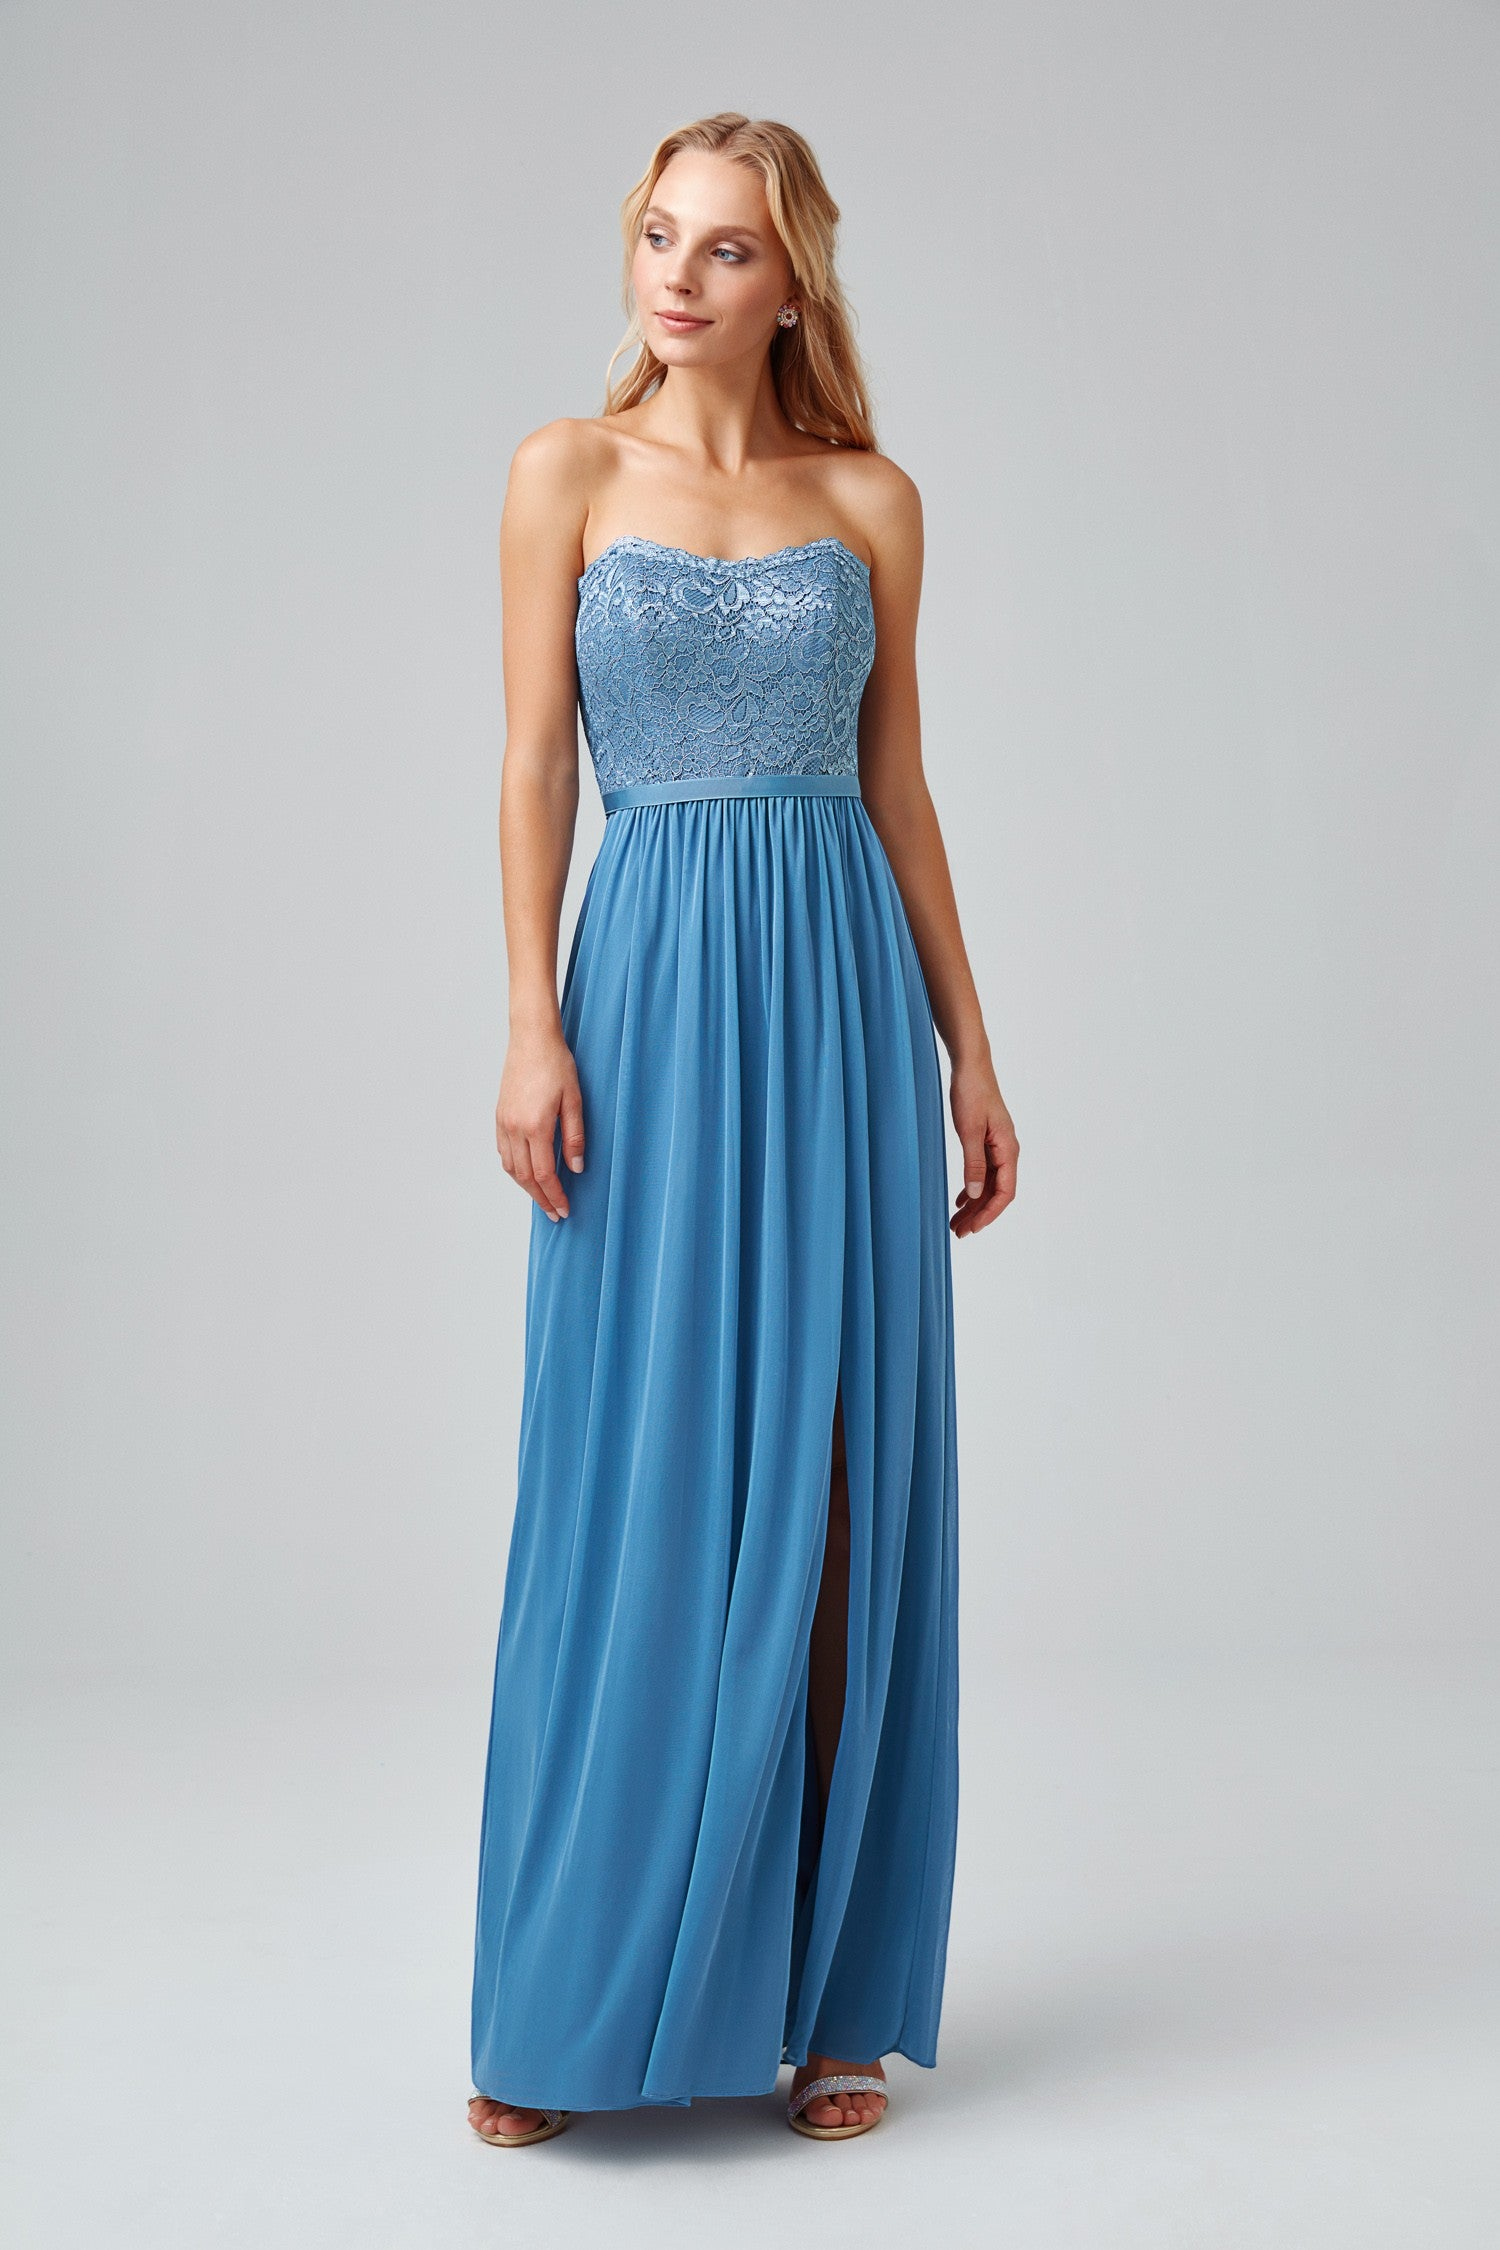 Metallic Lace and Mesh Long Strapless Dress-F18095M